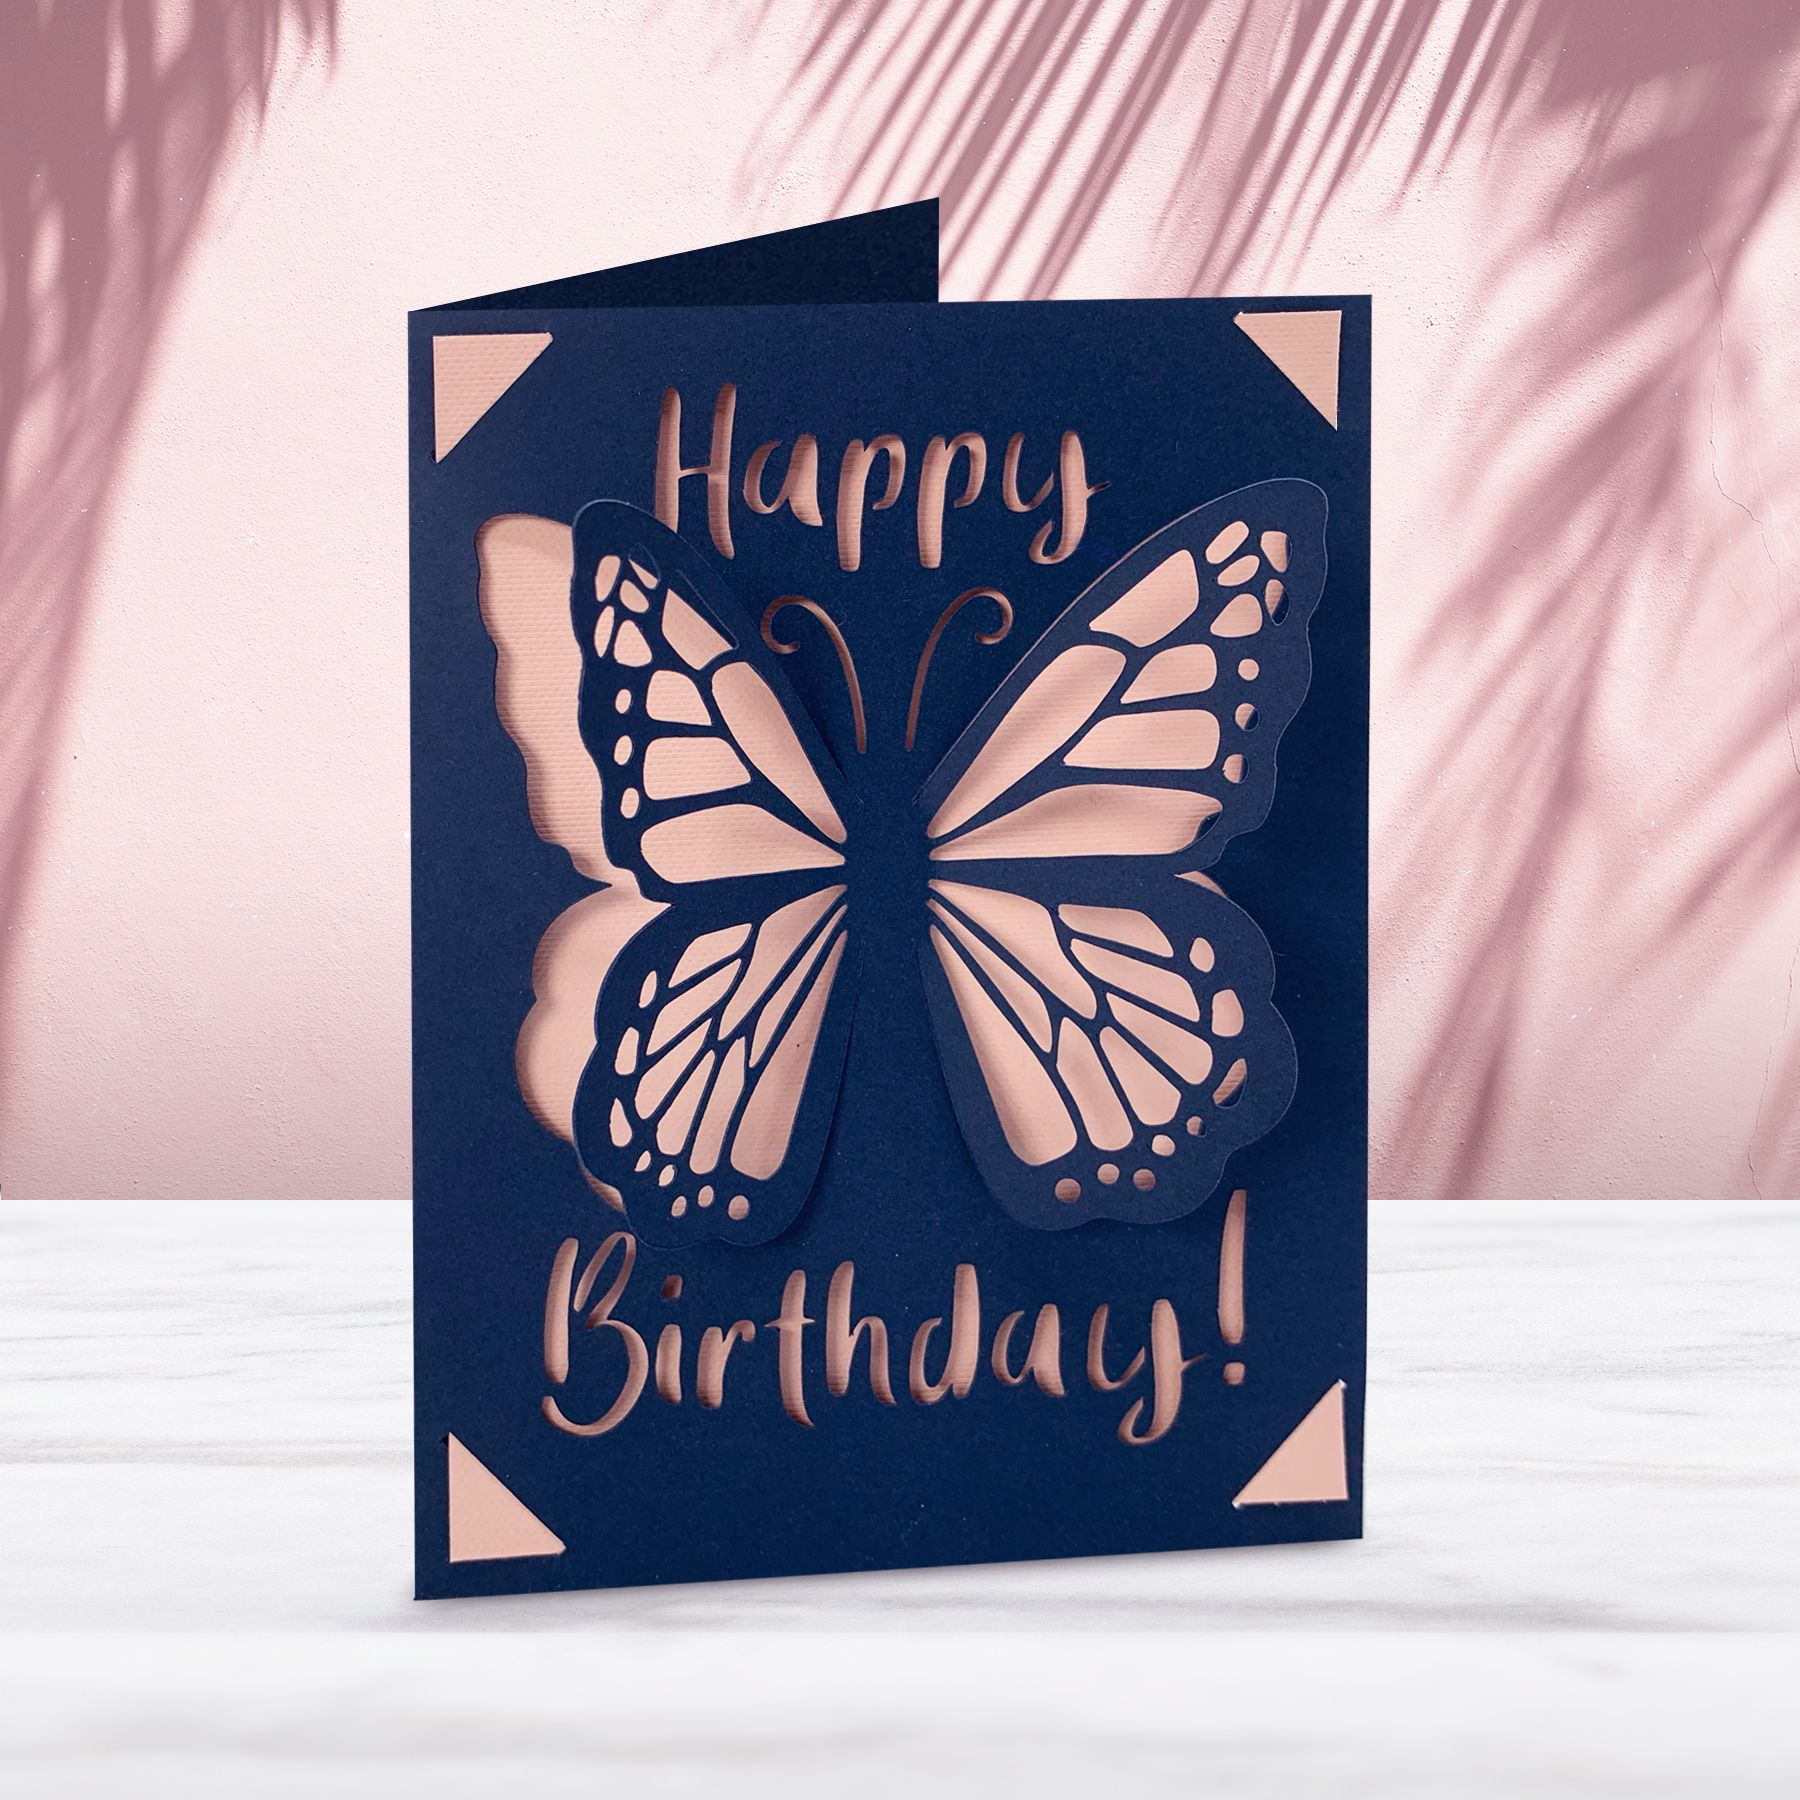 Cricut Joy Butterfly Pop Up Card Template Svg File Instant Download Pop Up Card Templates Cricut Birthday Cards Joy Cards